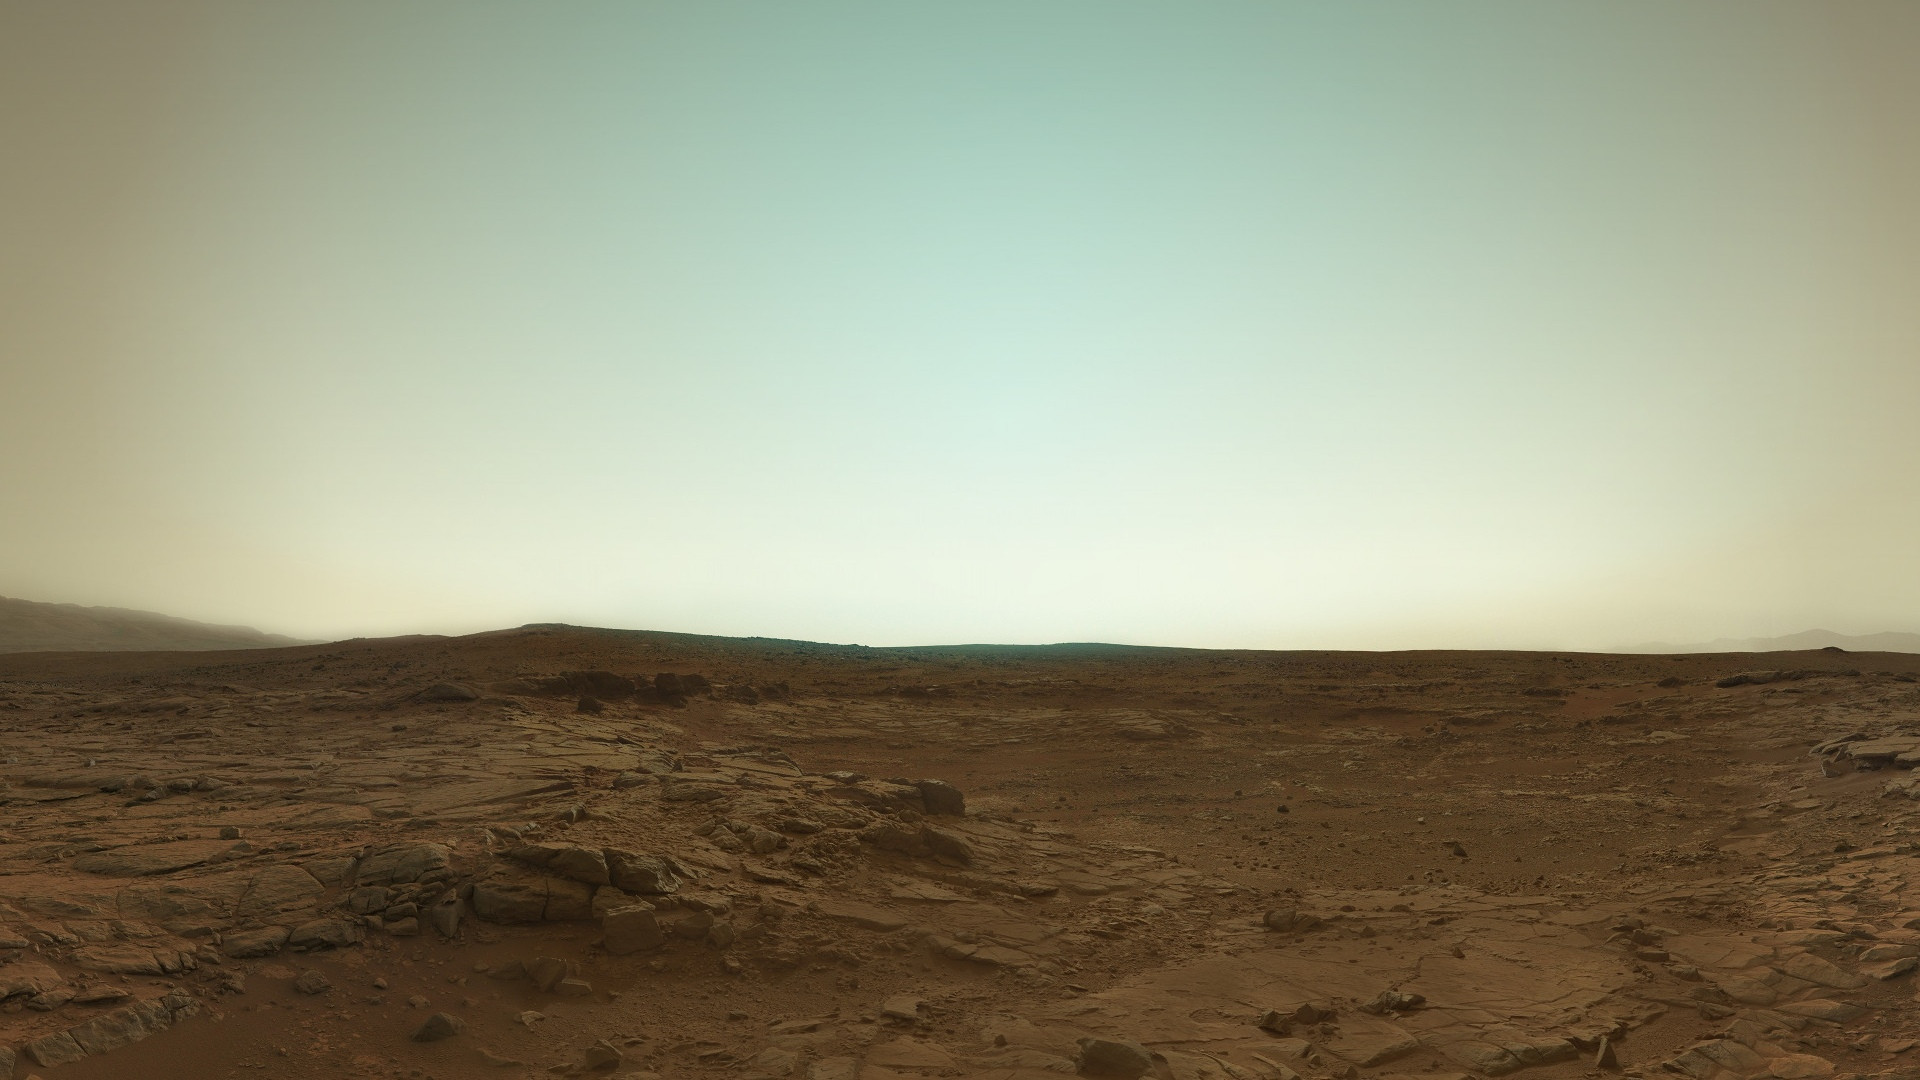 curiosity rover on mars background - photo #12